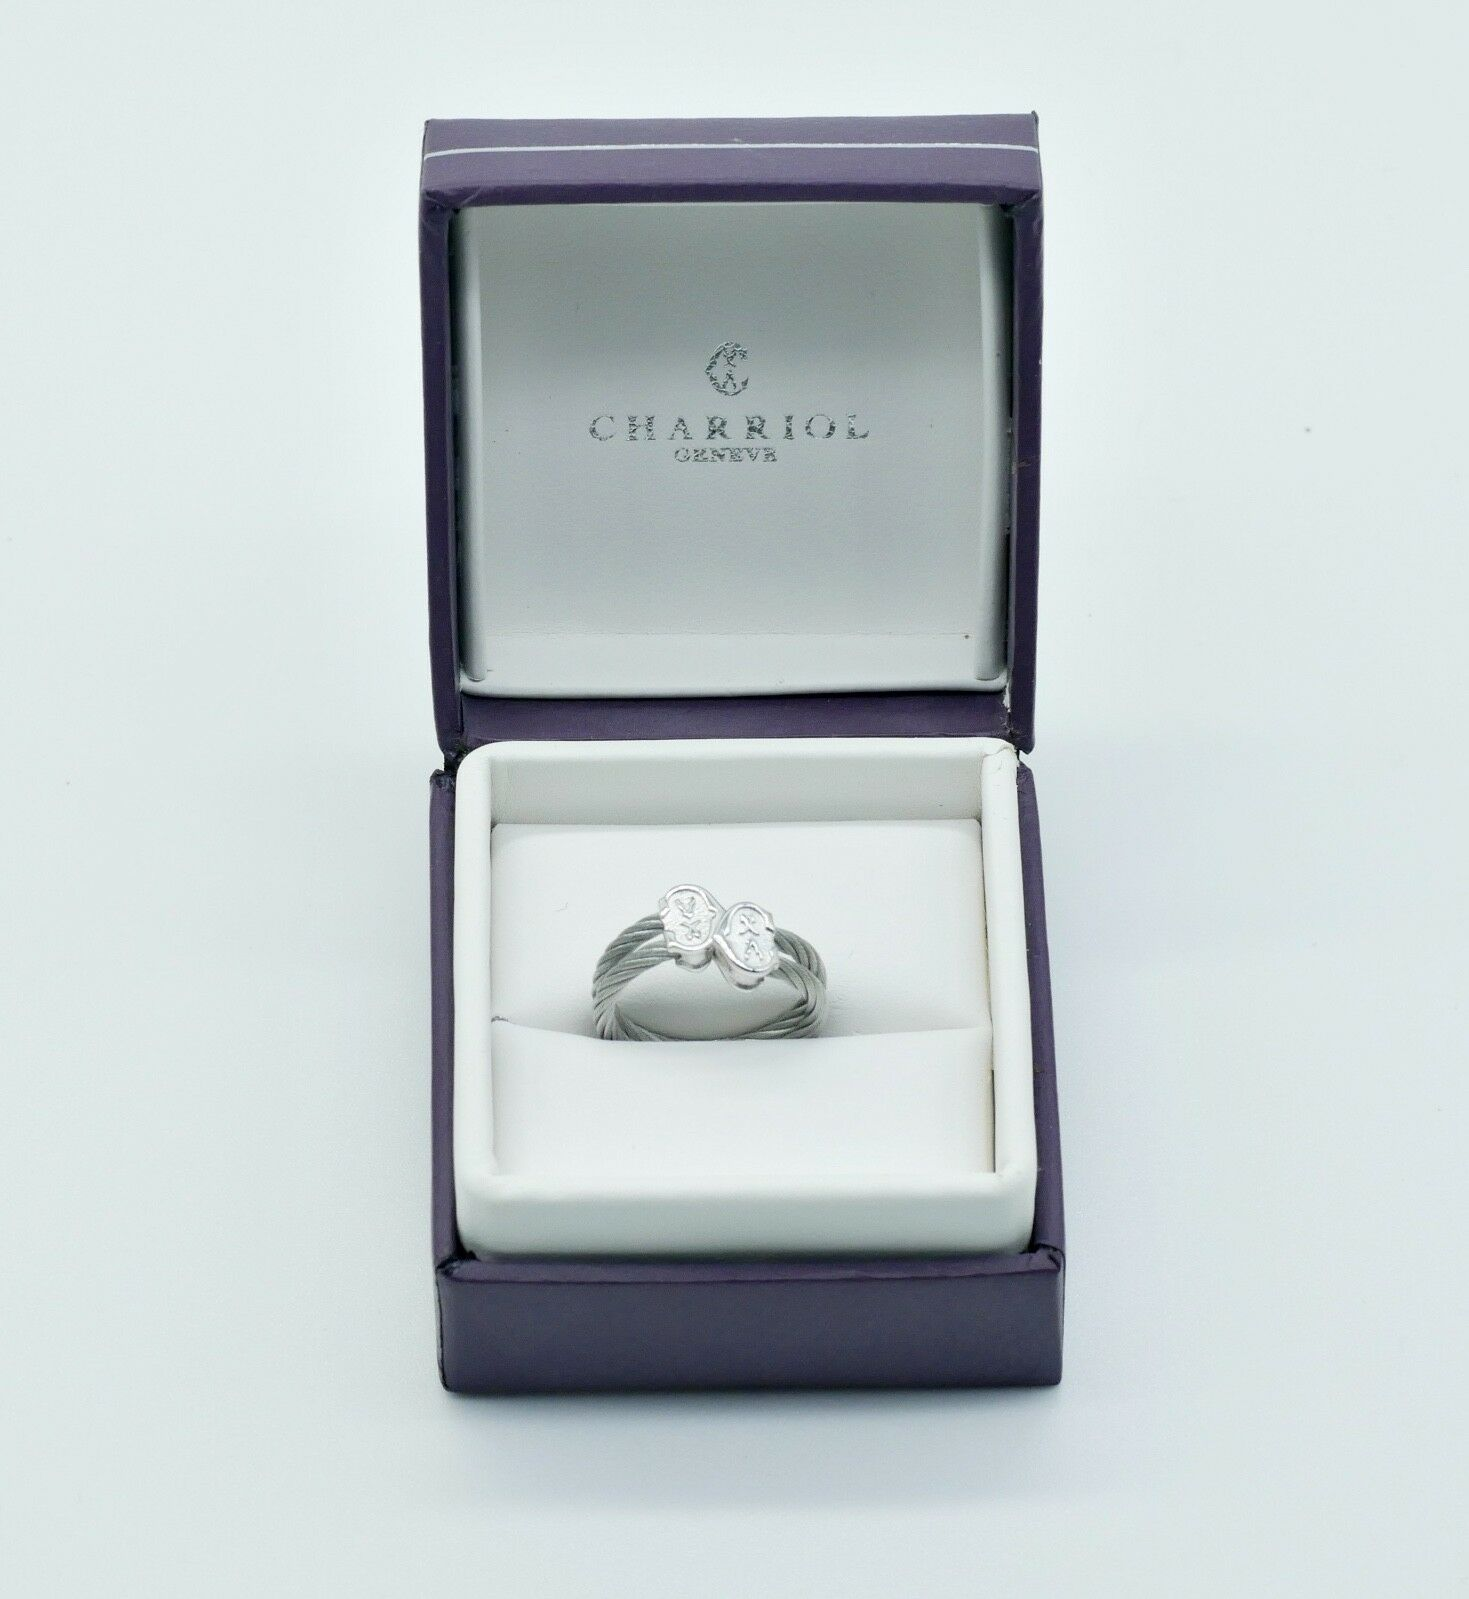 Charriol Anillo 925 Sterling silver Elemento Np. 02231085-0 N256